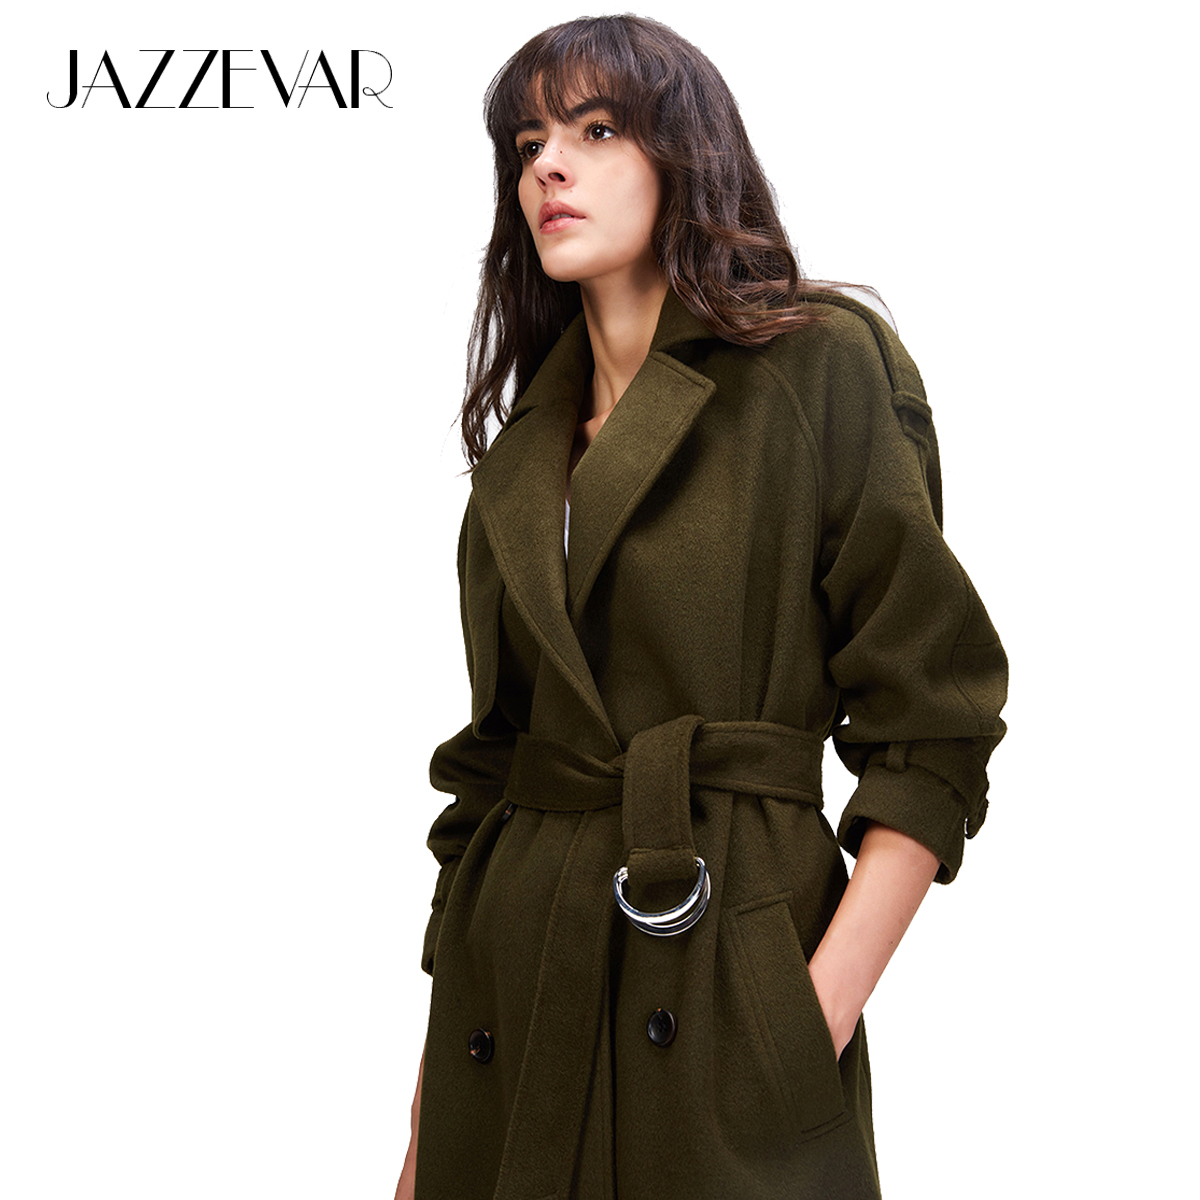 JAZZEVAR 2018 Autumn/winter New Women's Casual wool blend trench coat oversize Double Breasted X-Long coat with belt